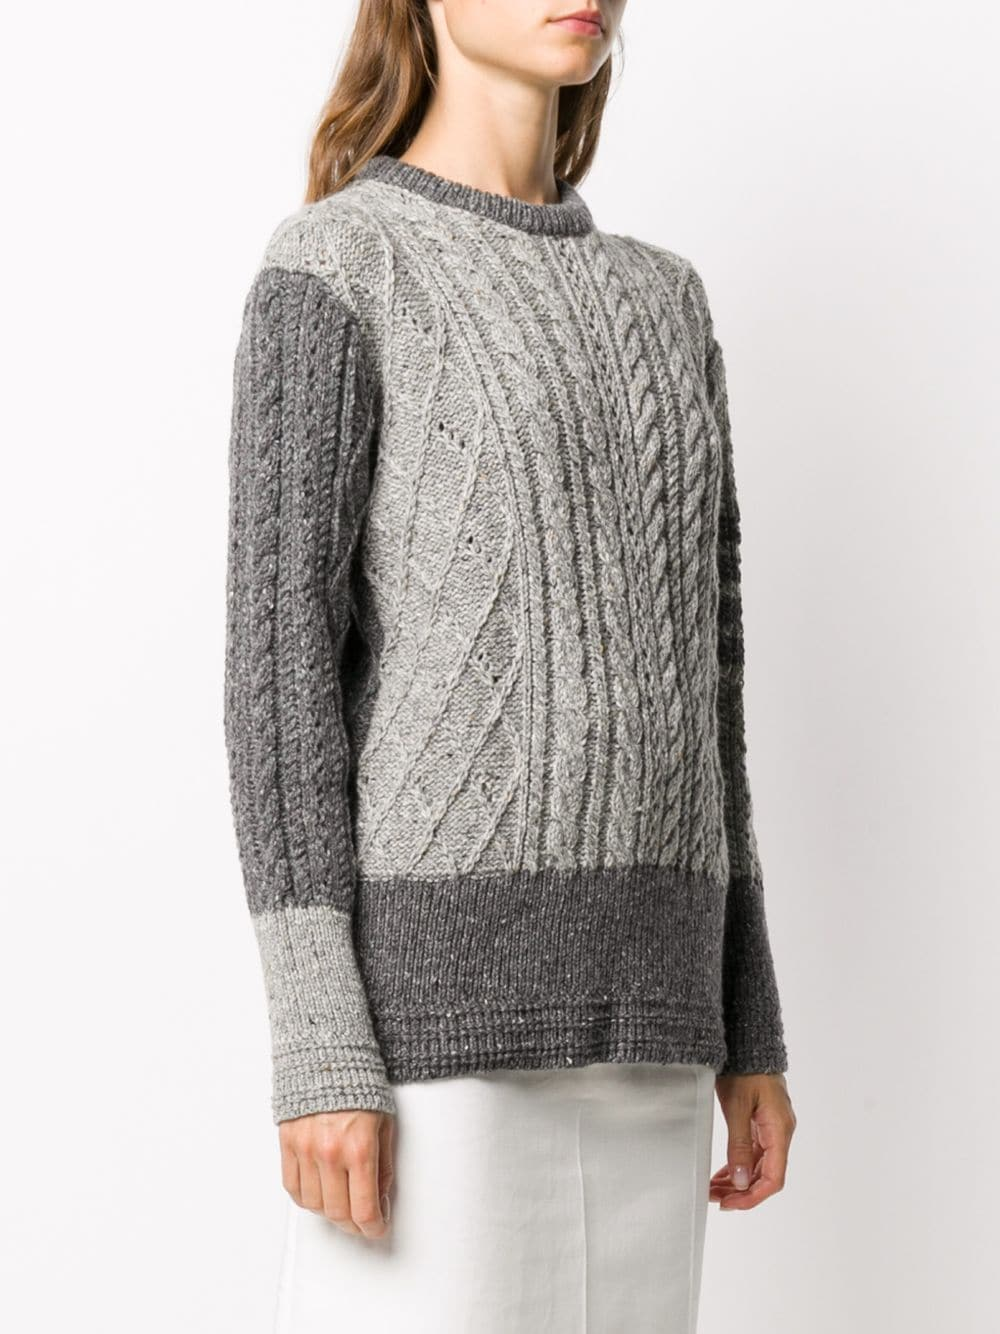 THOM BROWNE WOMEN FUN MIX CABLE RELAXED FIT CREWNECK PULLOVER W/ 4 BAR IN MOHAIR TWEED